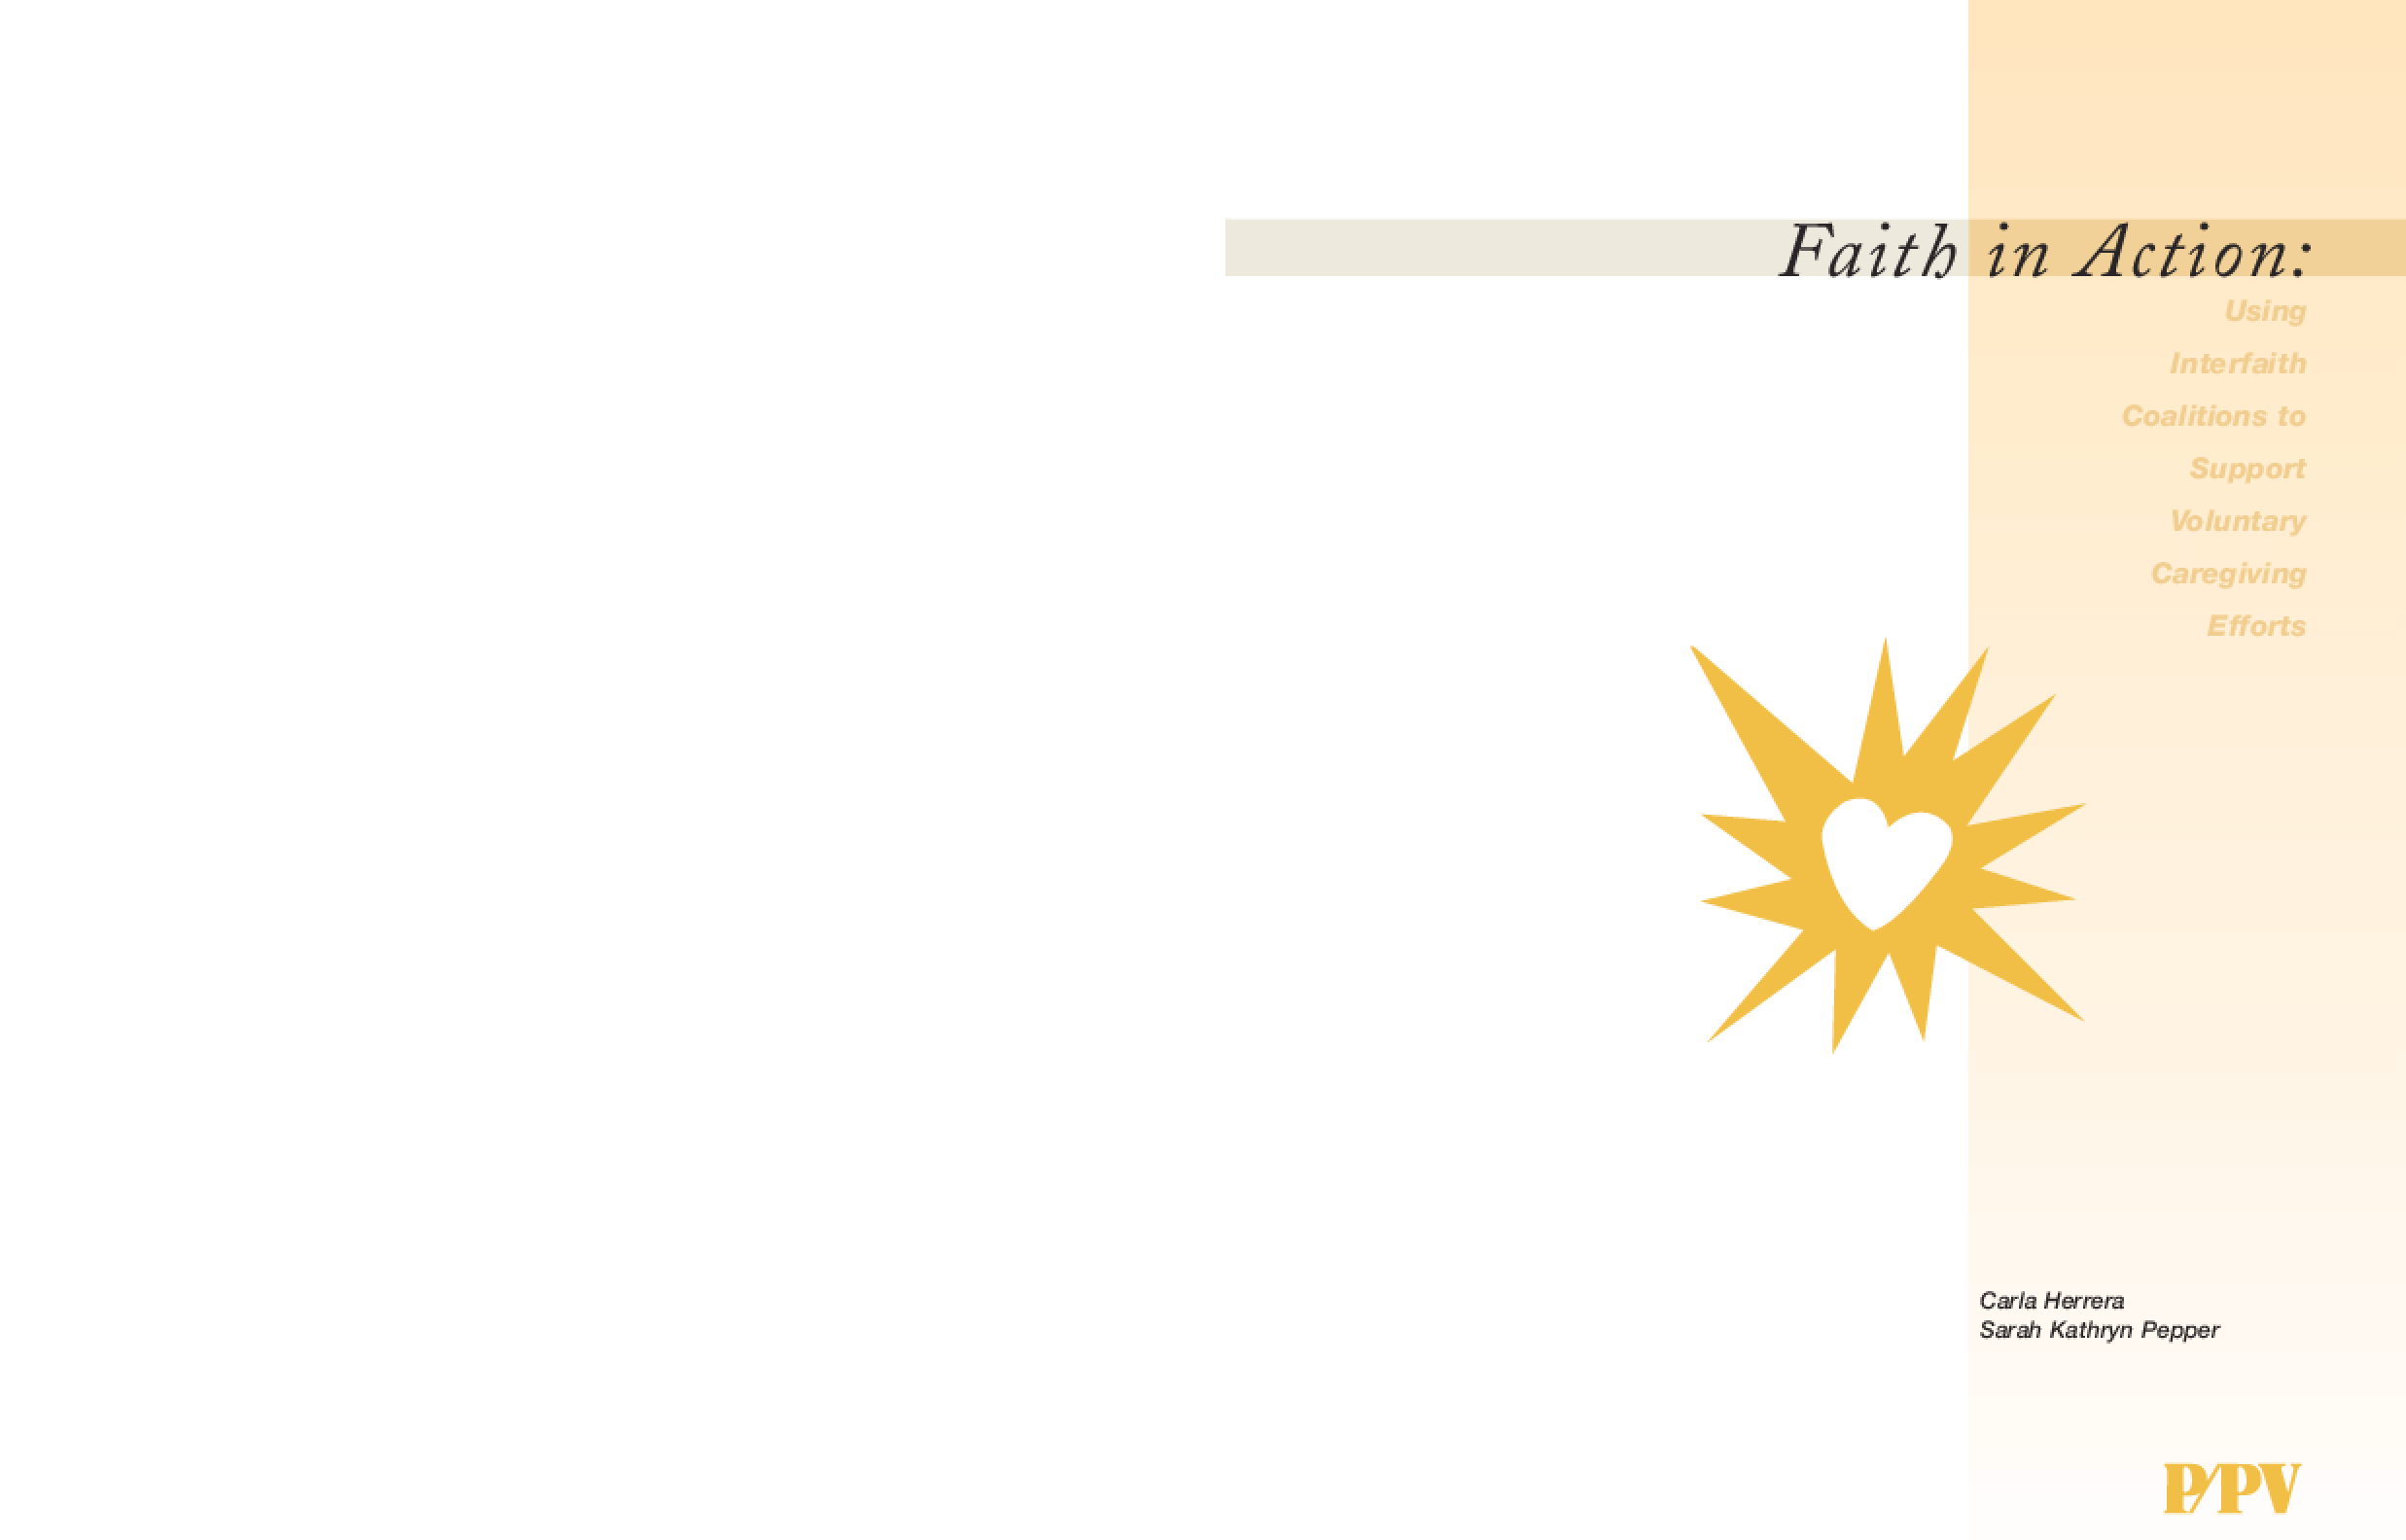 Faith in Action: Using Interfaith Coalitions to Support Voluntary Caregiving Efforts